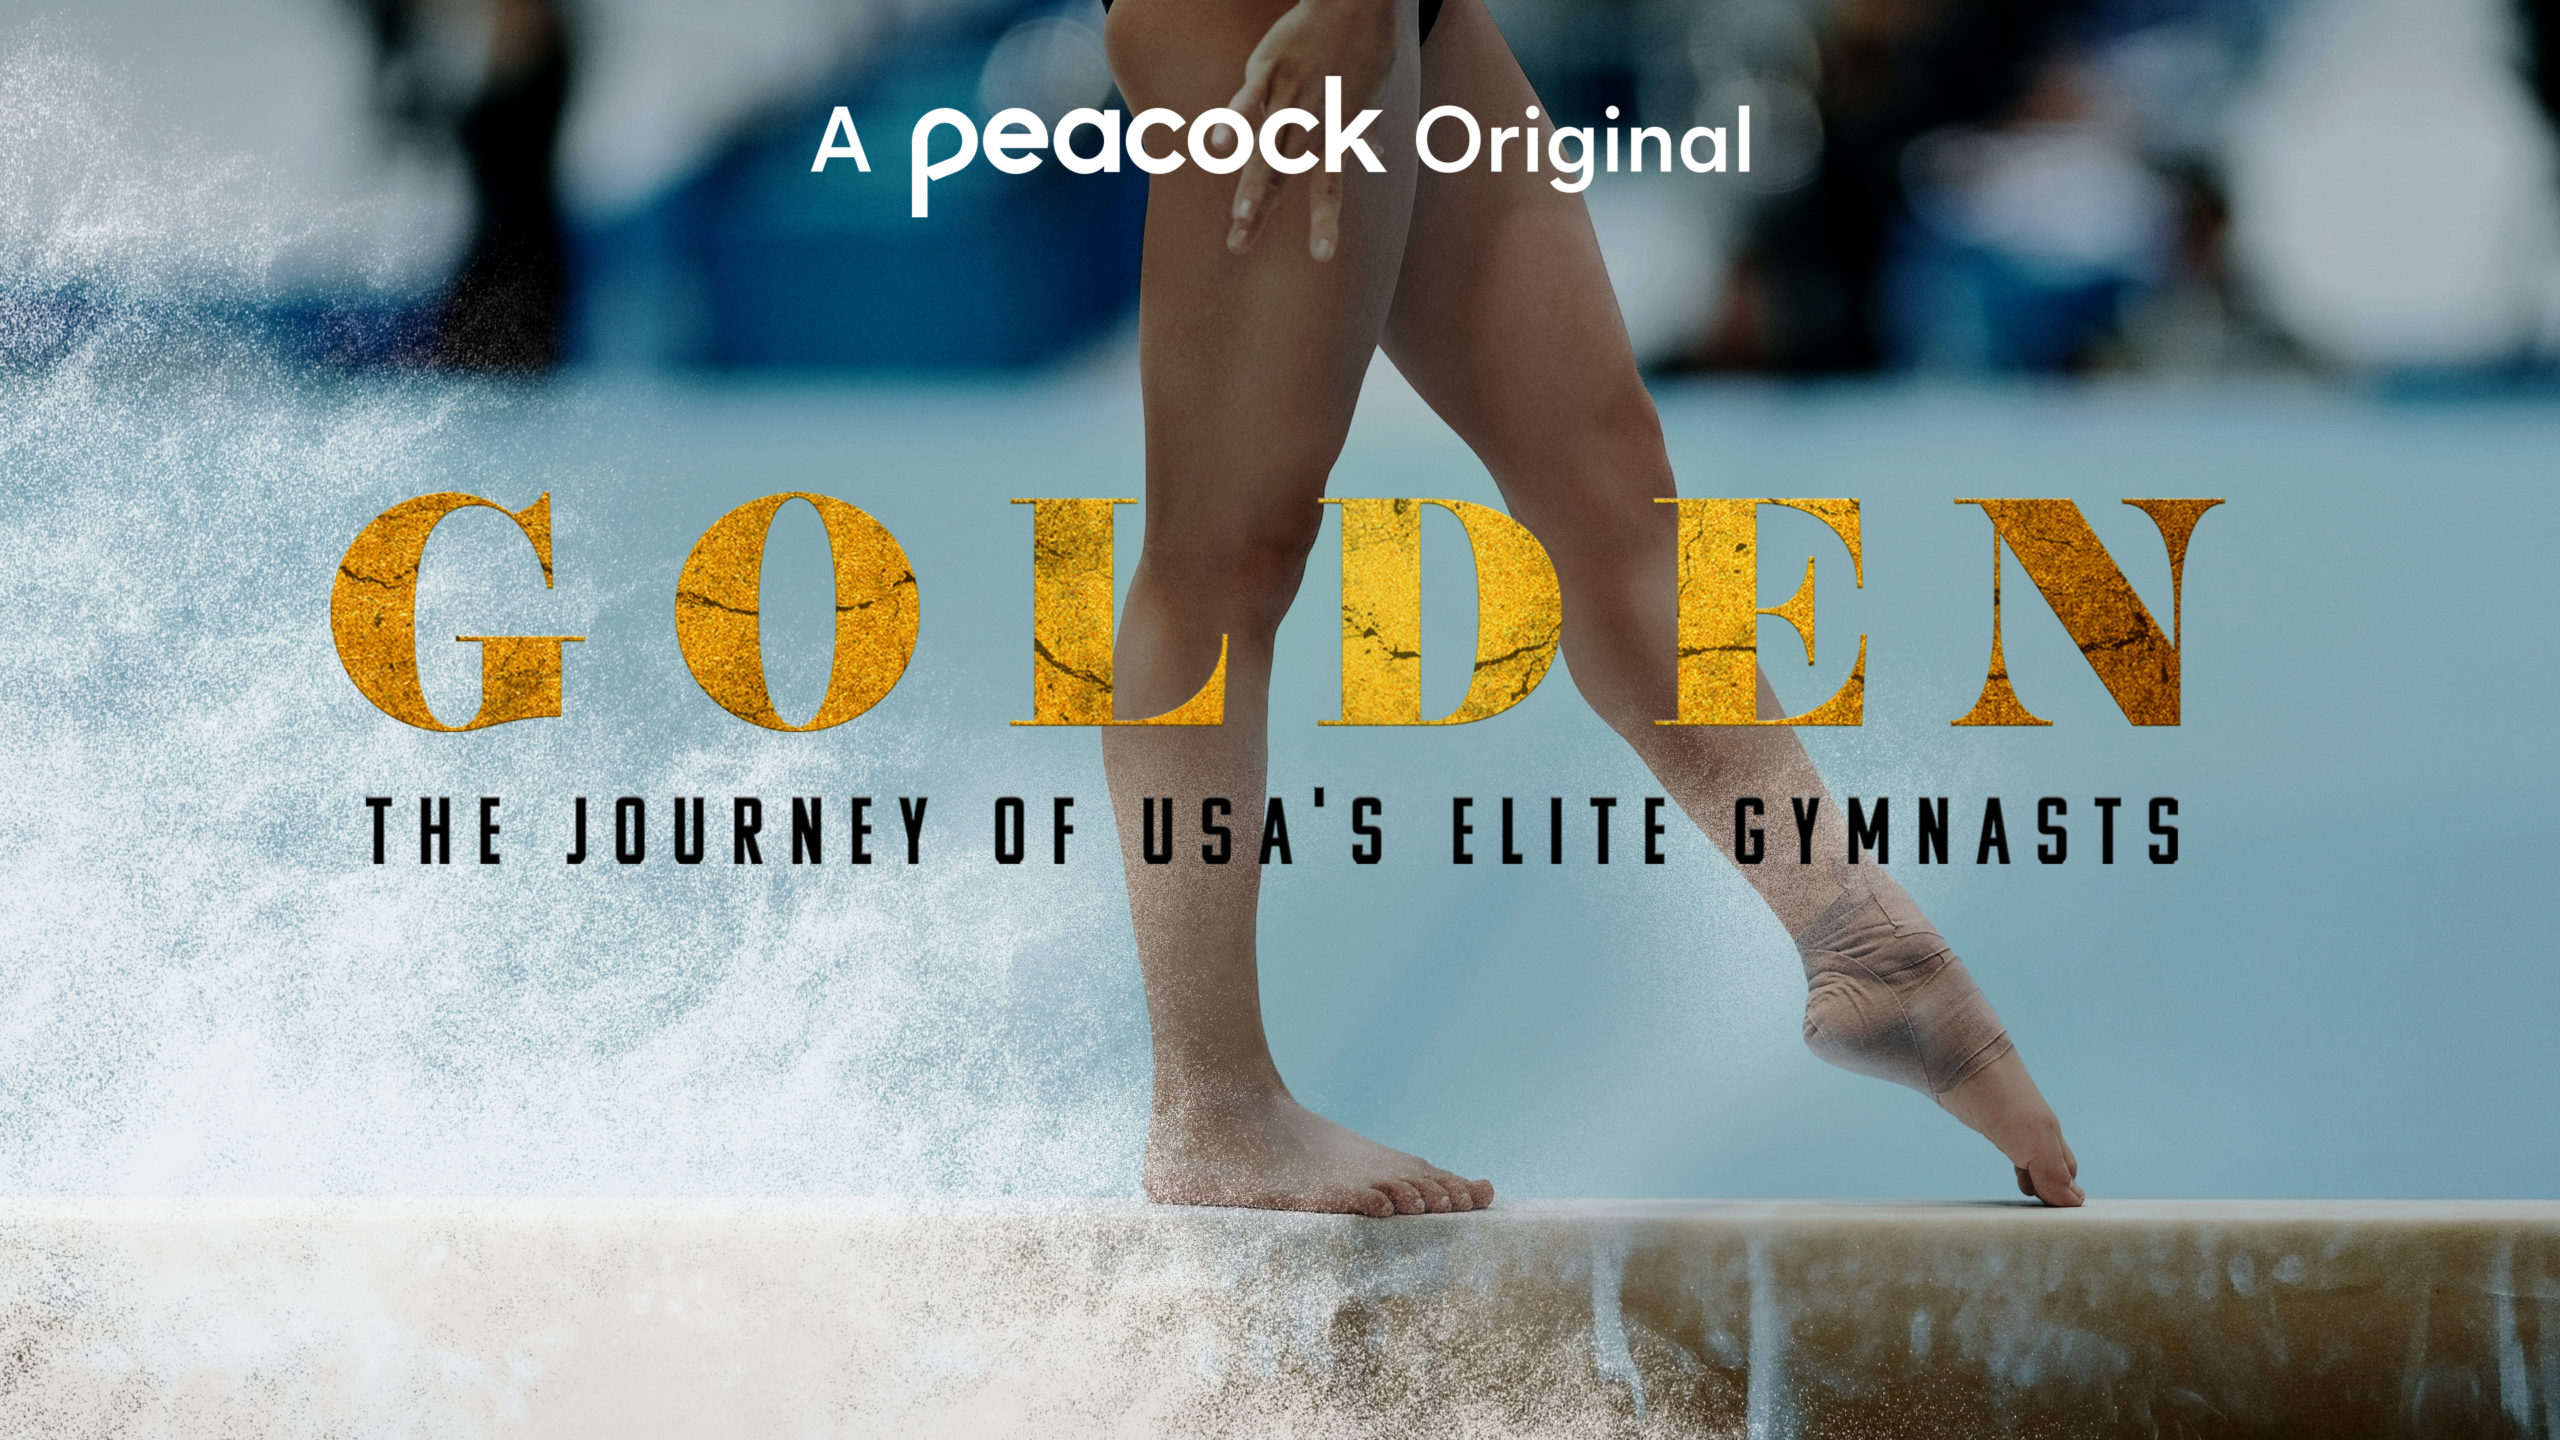 WATCH: Olympic gold medalist Dominique Dawes discusses new docuseries 'Golden: The Journey of USA's Elite Gymnasts'